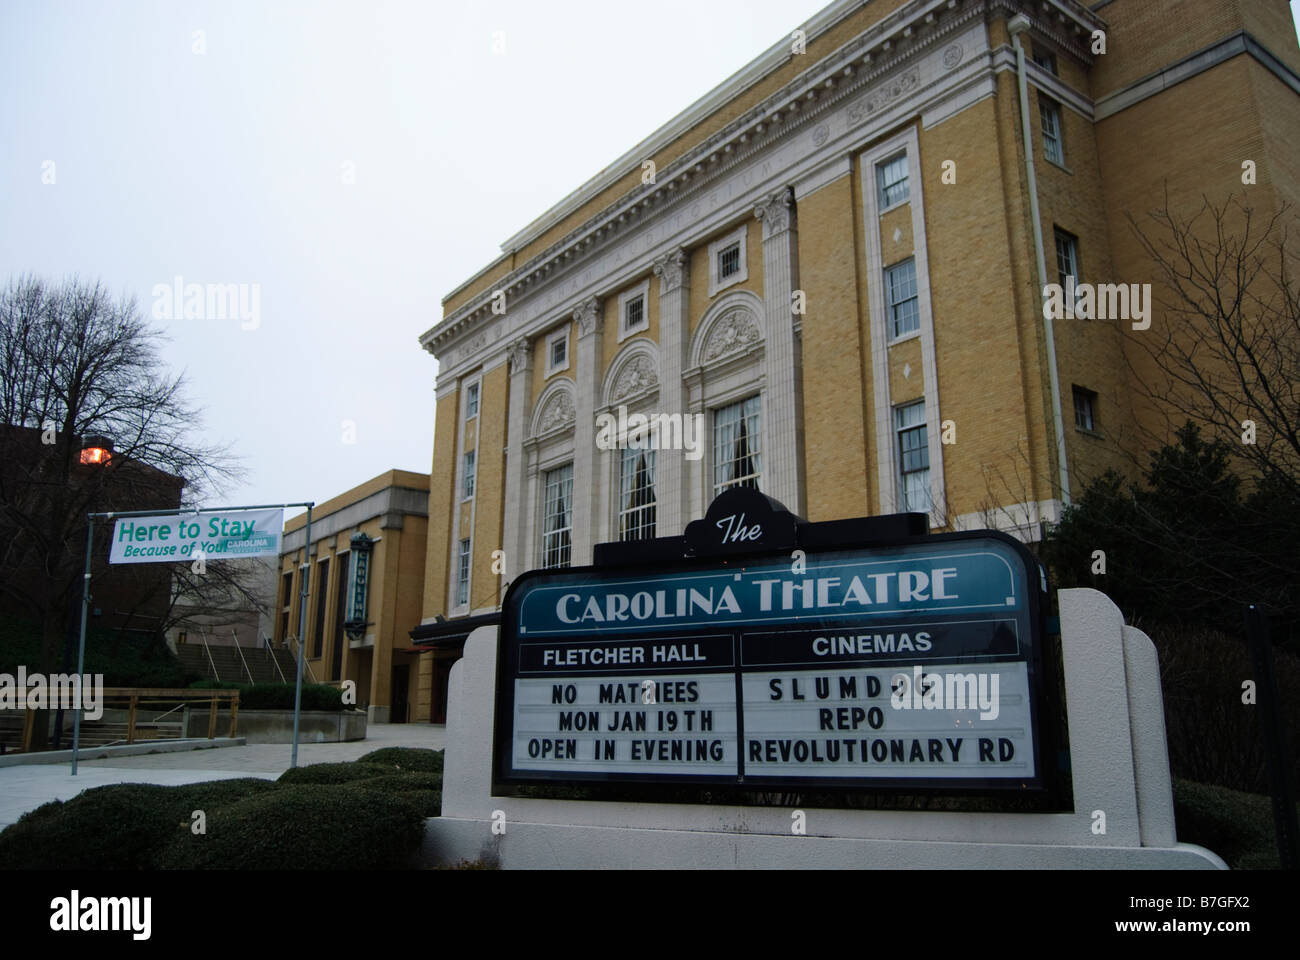 Carolina Theatre in downtown Durham North Carolina - Stock Image